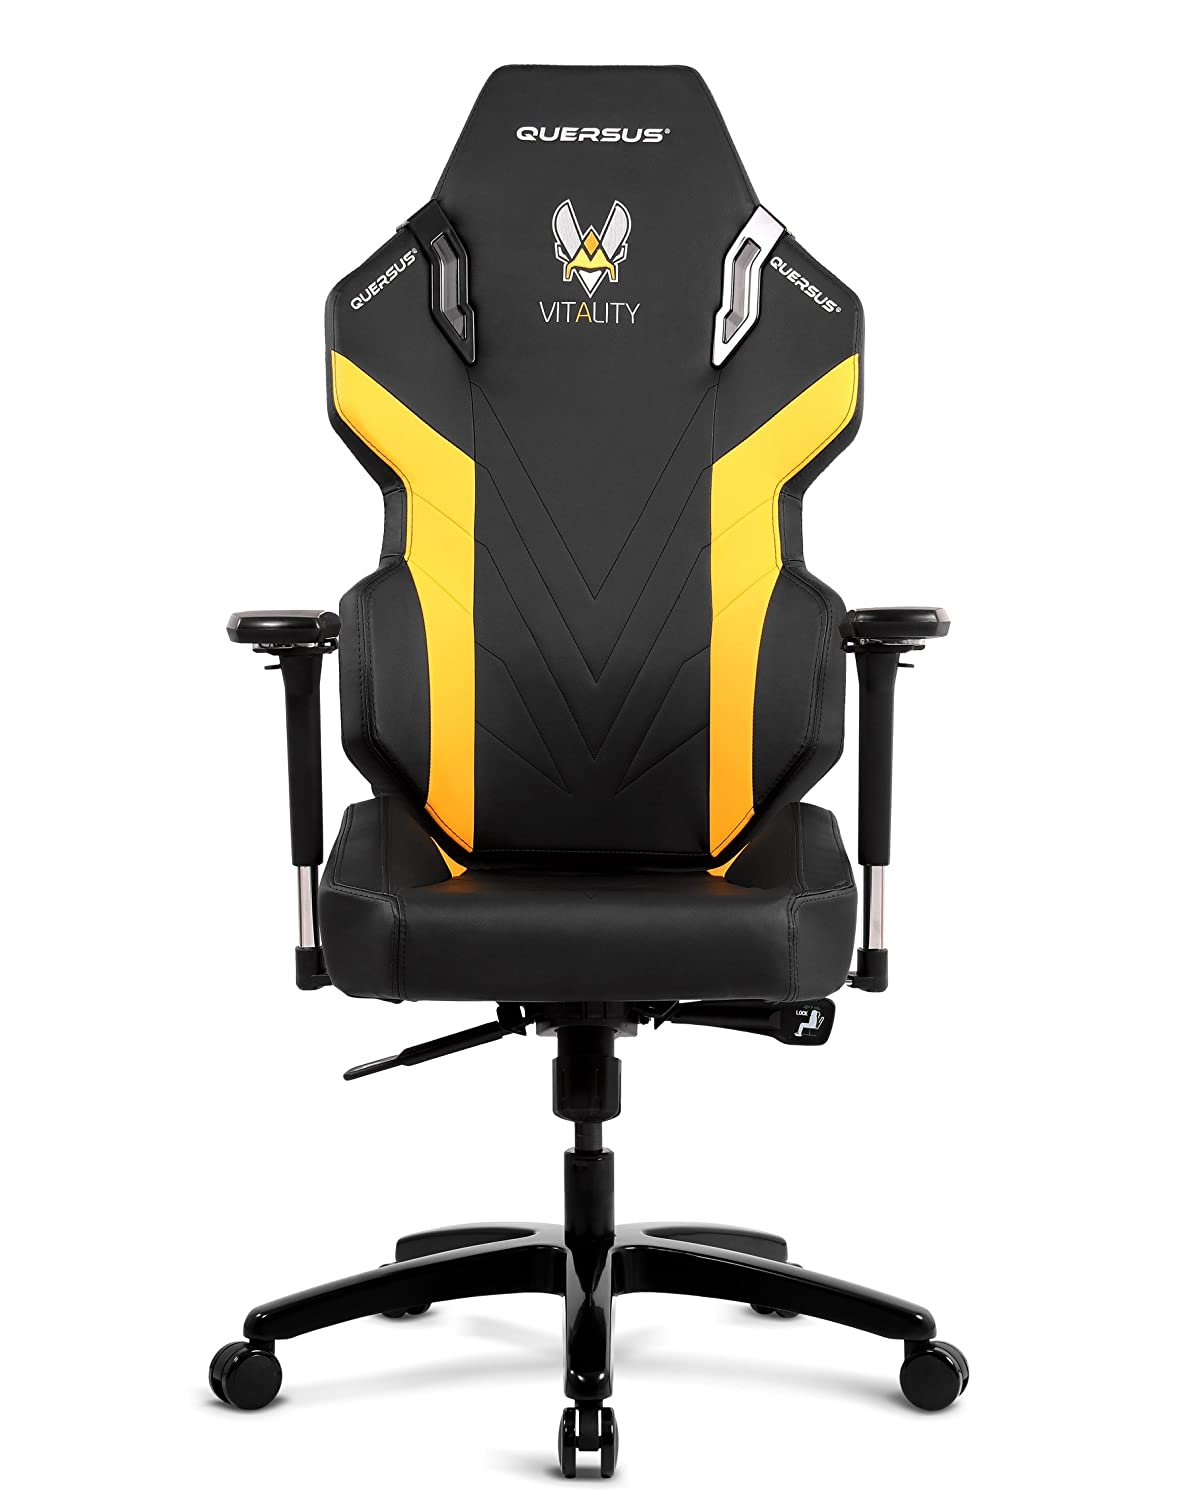 50 Off Vitalit Gaming Chair Quersus Vitality Evos Executive